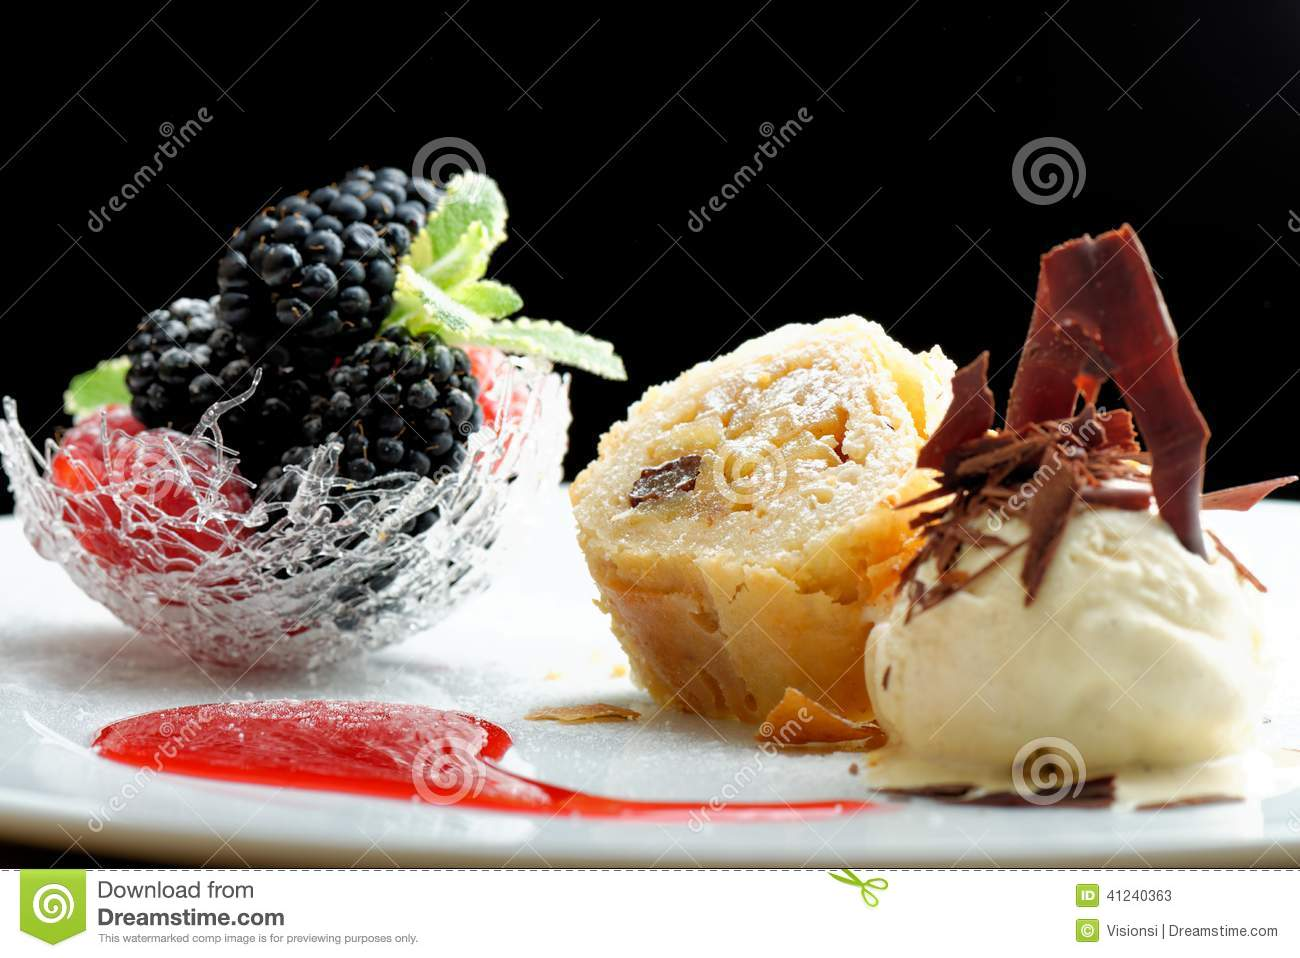 Haute Cuisine Strudel With Ice Cream And Berries Dessert  : haute cuisine strudel ice cream berries dessert restaurant table shallow focus depth 41240363 from www.dreamstime.com size 1300 x 958 jpeg 120kB